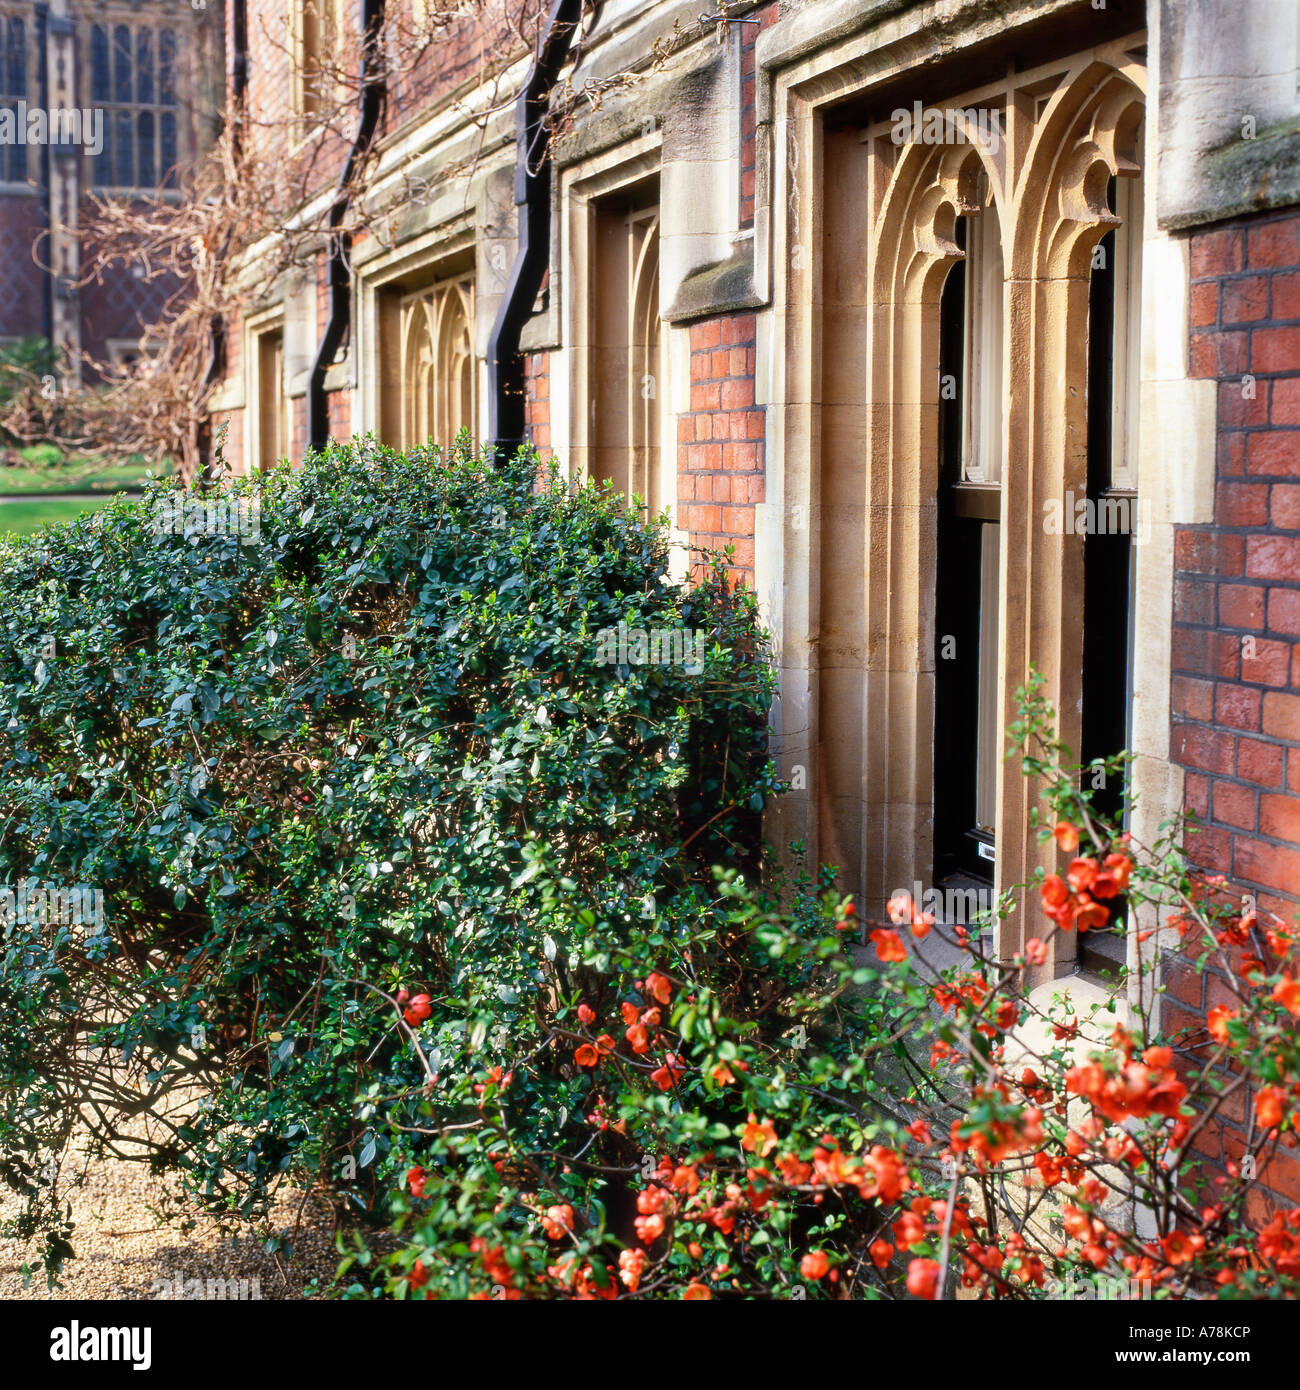 CHAENOMELES PLANT with orange flowers architectural detail of window at Old Square, Inns of Court, Lincoln's Inn Stock Photo